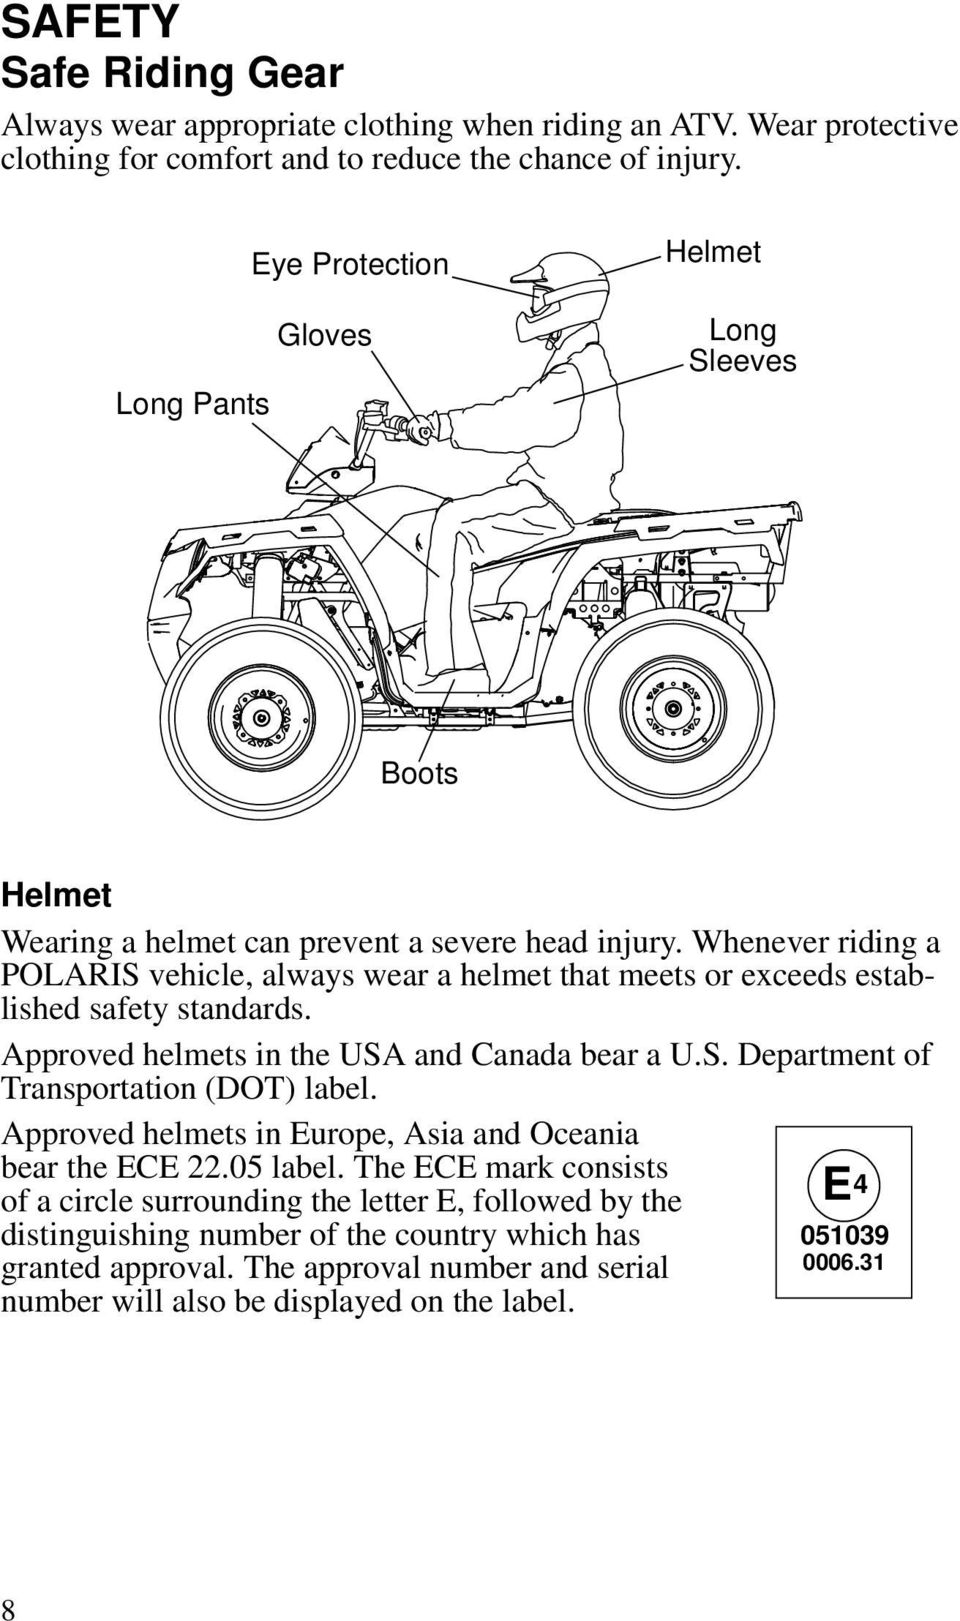 Sportsman 400 H O  Sportsman 500 H O  Owner's Manual for